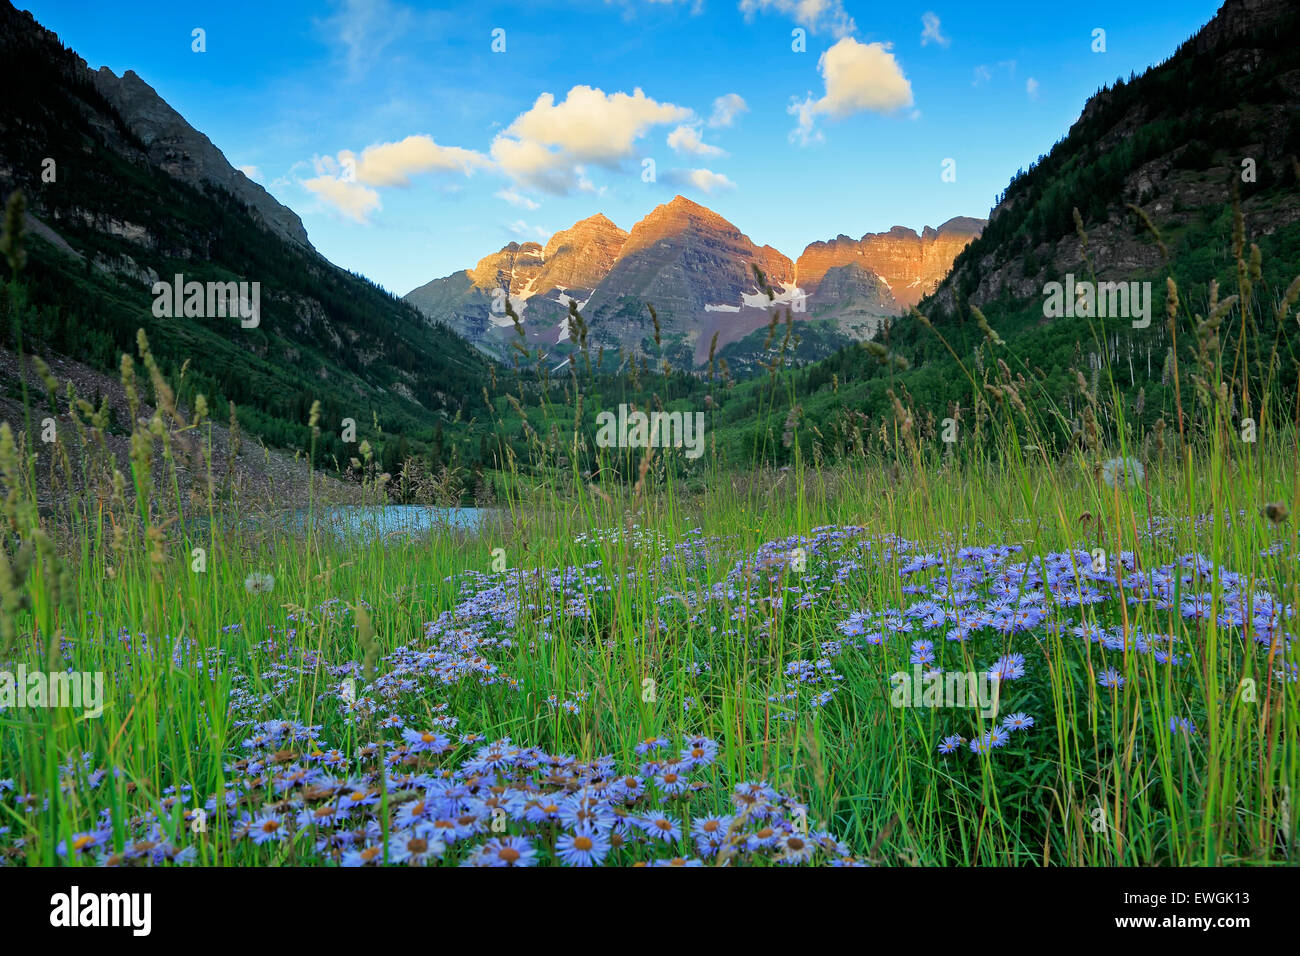 Maroon Bells et fleurs sauvages, White River National Forest, Aspen, Colorado USA Photo Stock